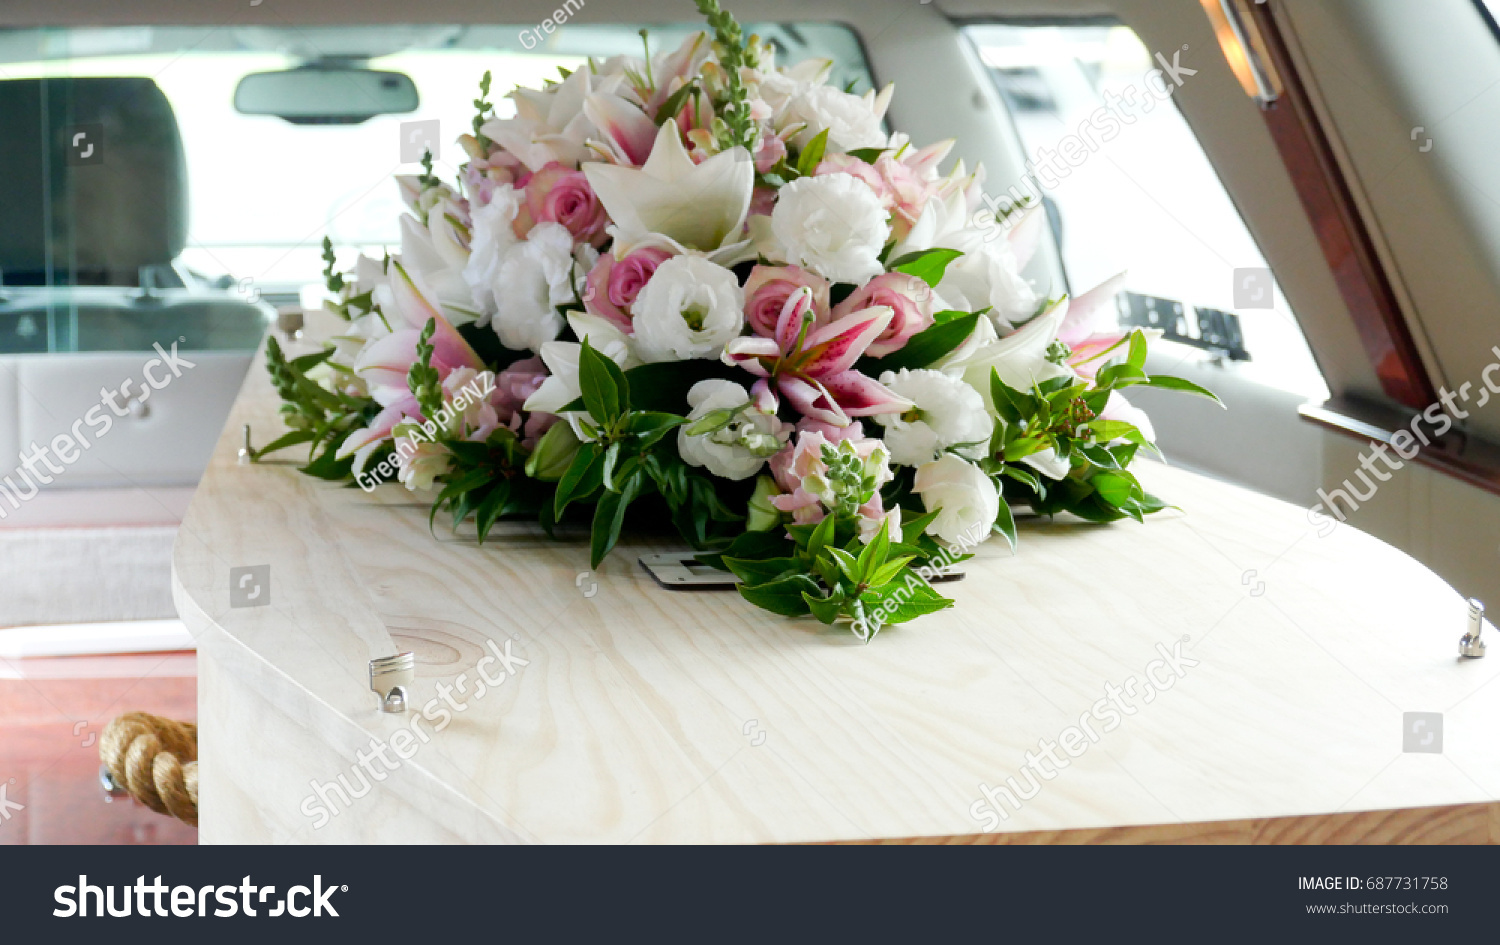 Funeral casket coffin burial celebrate death stock photo edit now funeral casket coffin burial celebrate the death goodbye loved one izmirmasajfo